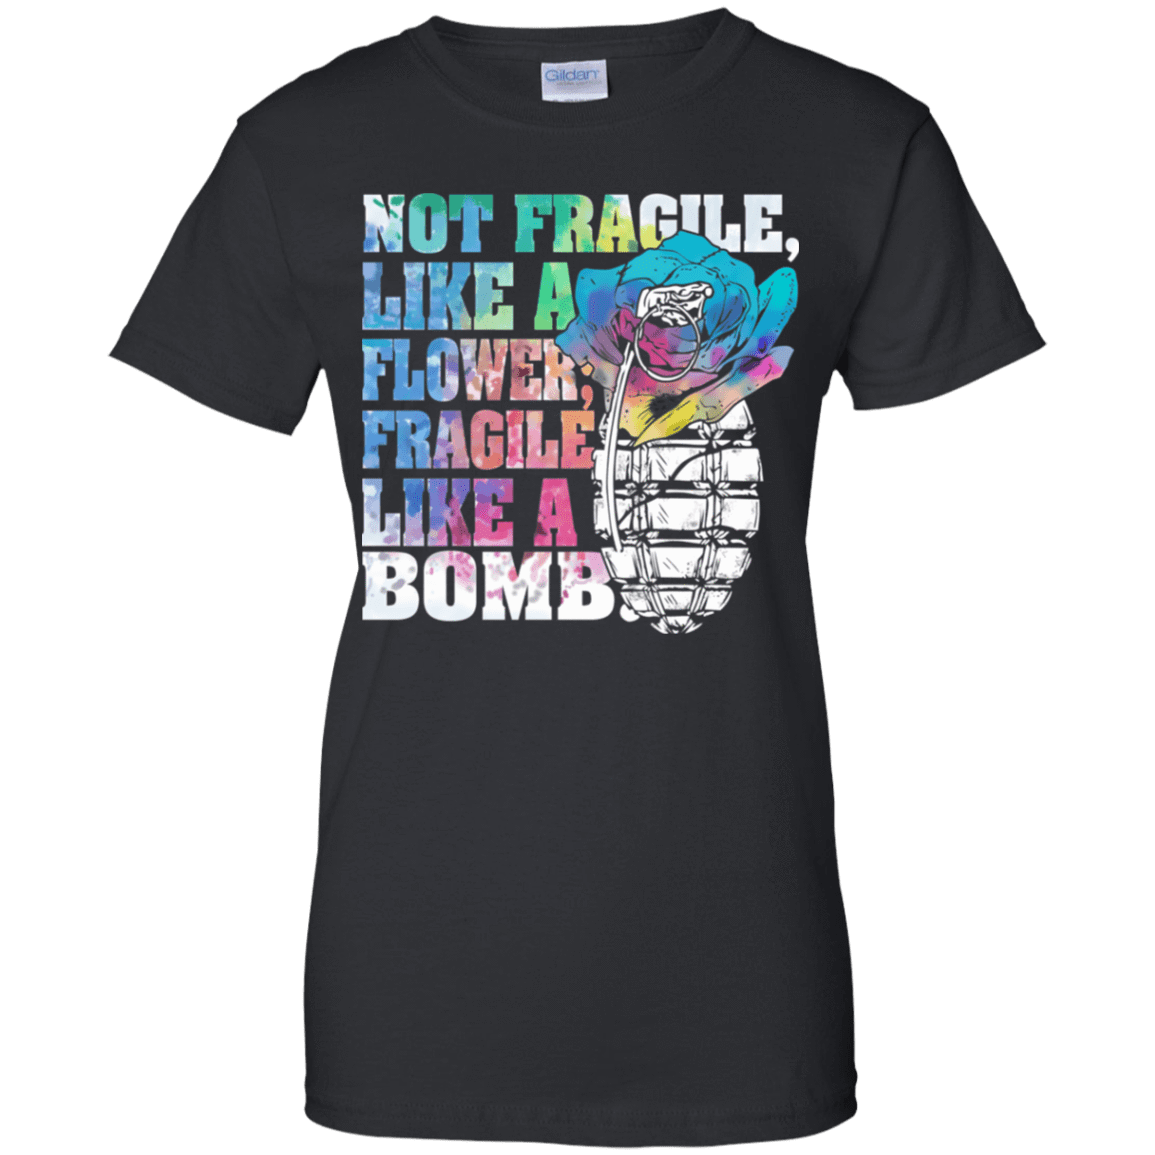 Not Fragile Like A Flower, Fragile Like A Bomb 939-9248-73170840-44695 - Tee Ript